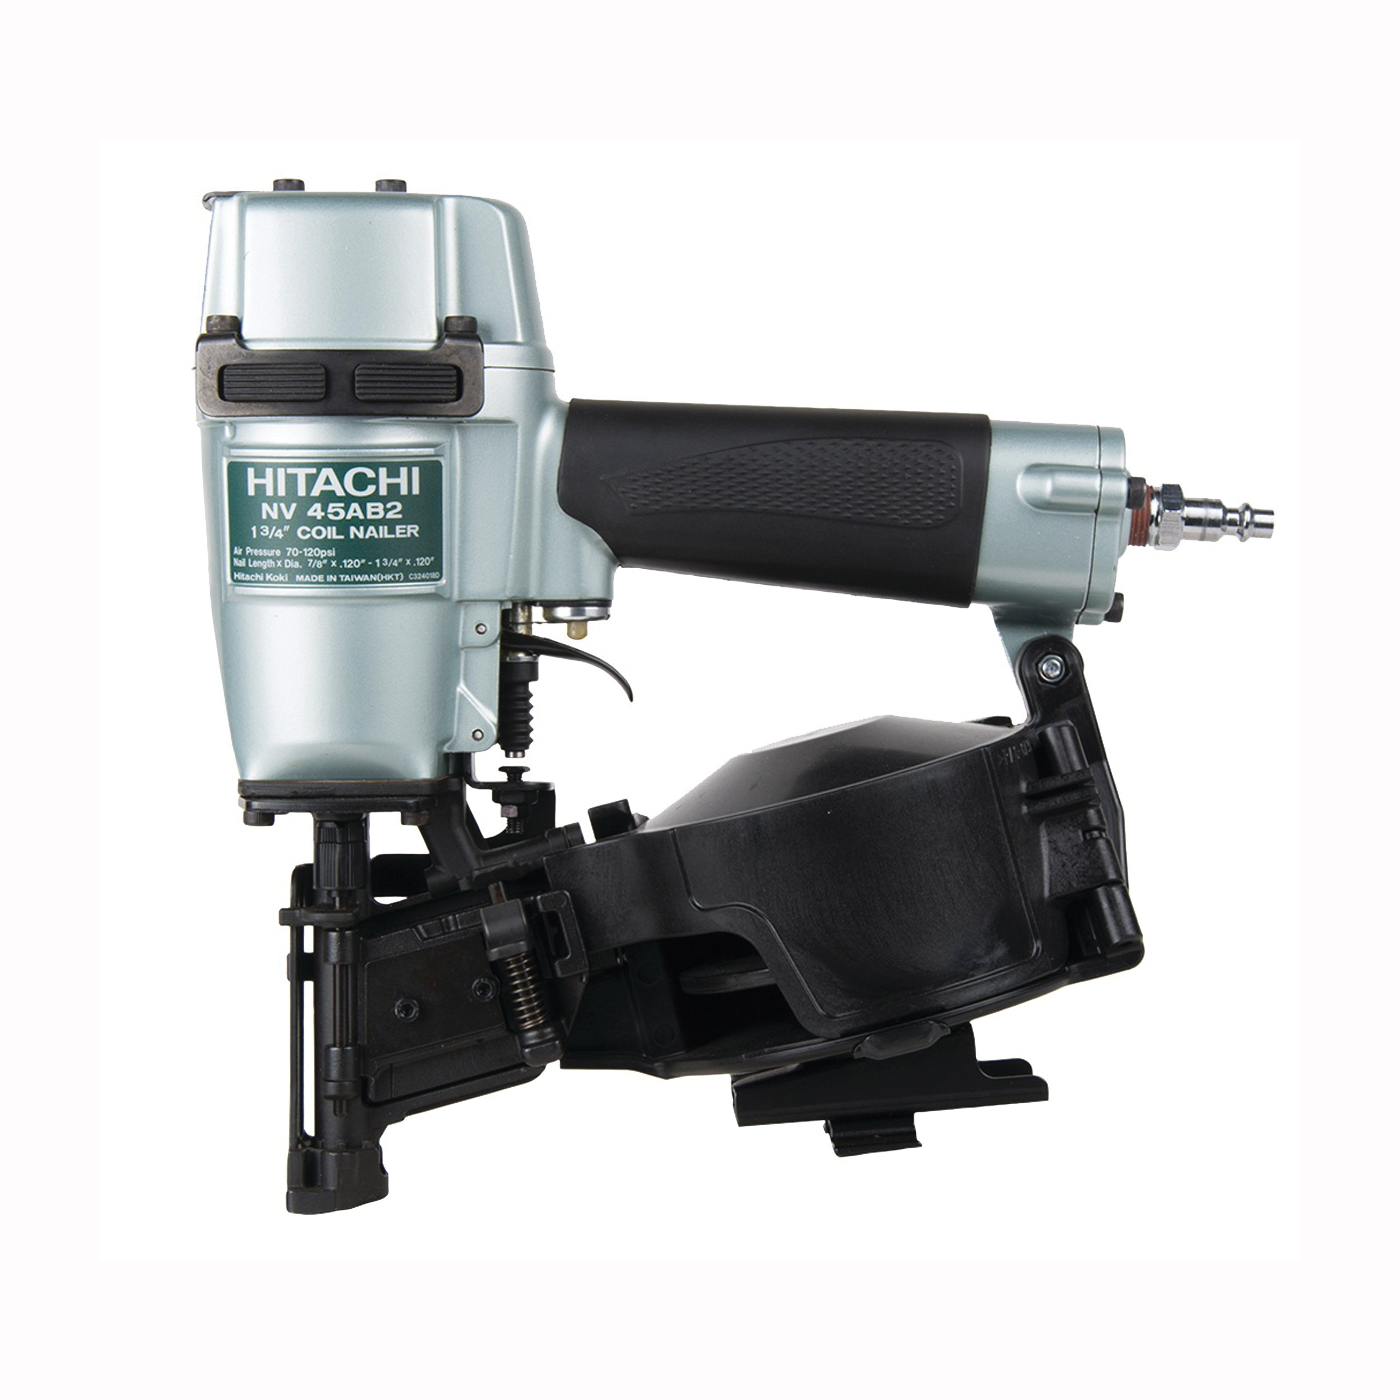 Picture of HITACHI NV45AB2 Roofing Nailer, 120 Magazine, 16 deg Collation